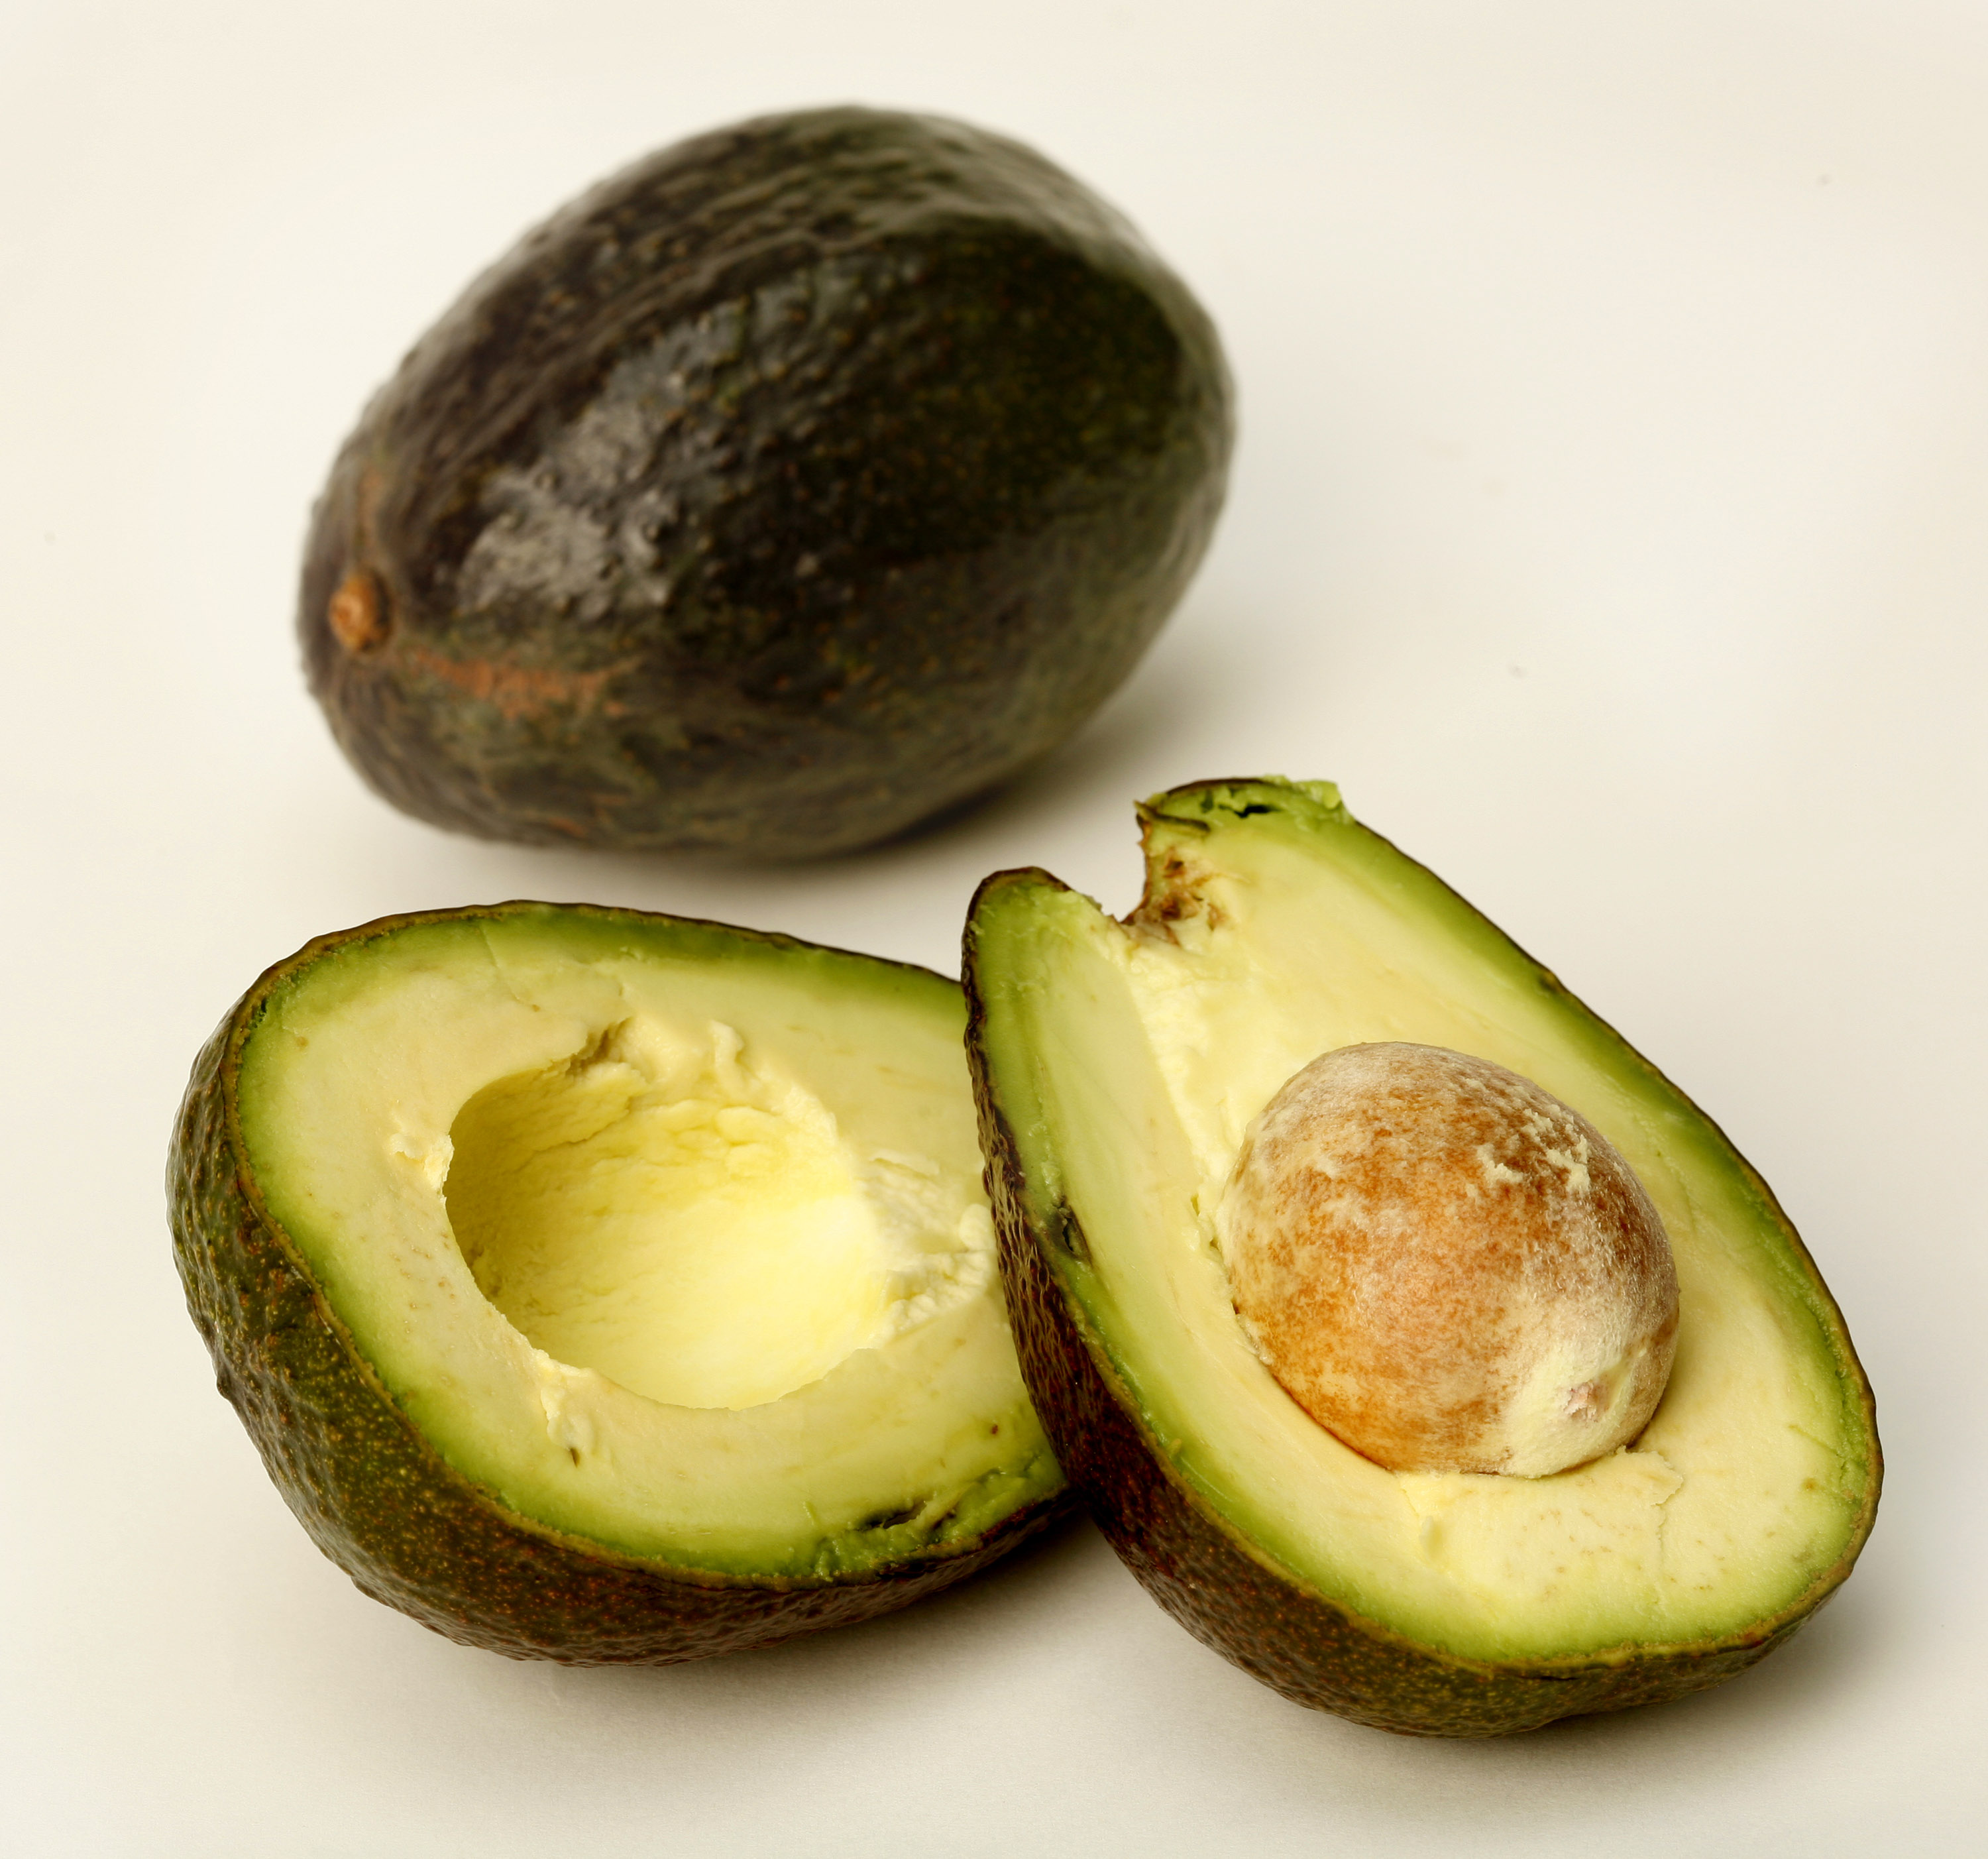 An avocado contains about 27 calories and 37 grams of fat, but it has earned its place in the health pantheon.  (Photo by Michael Tercha/Chicago Tribune/MCT via Getty Images)